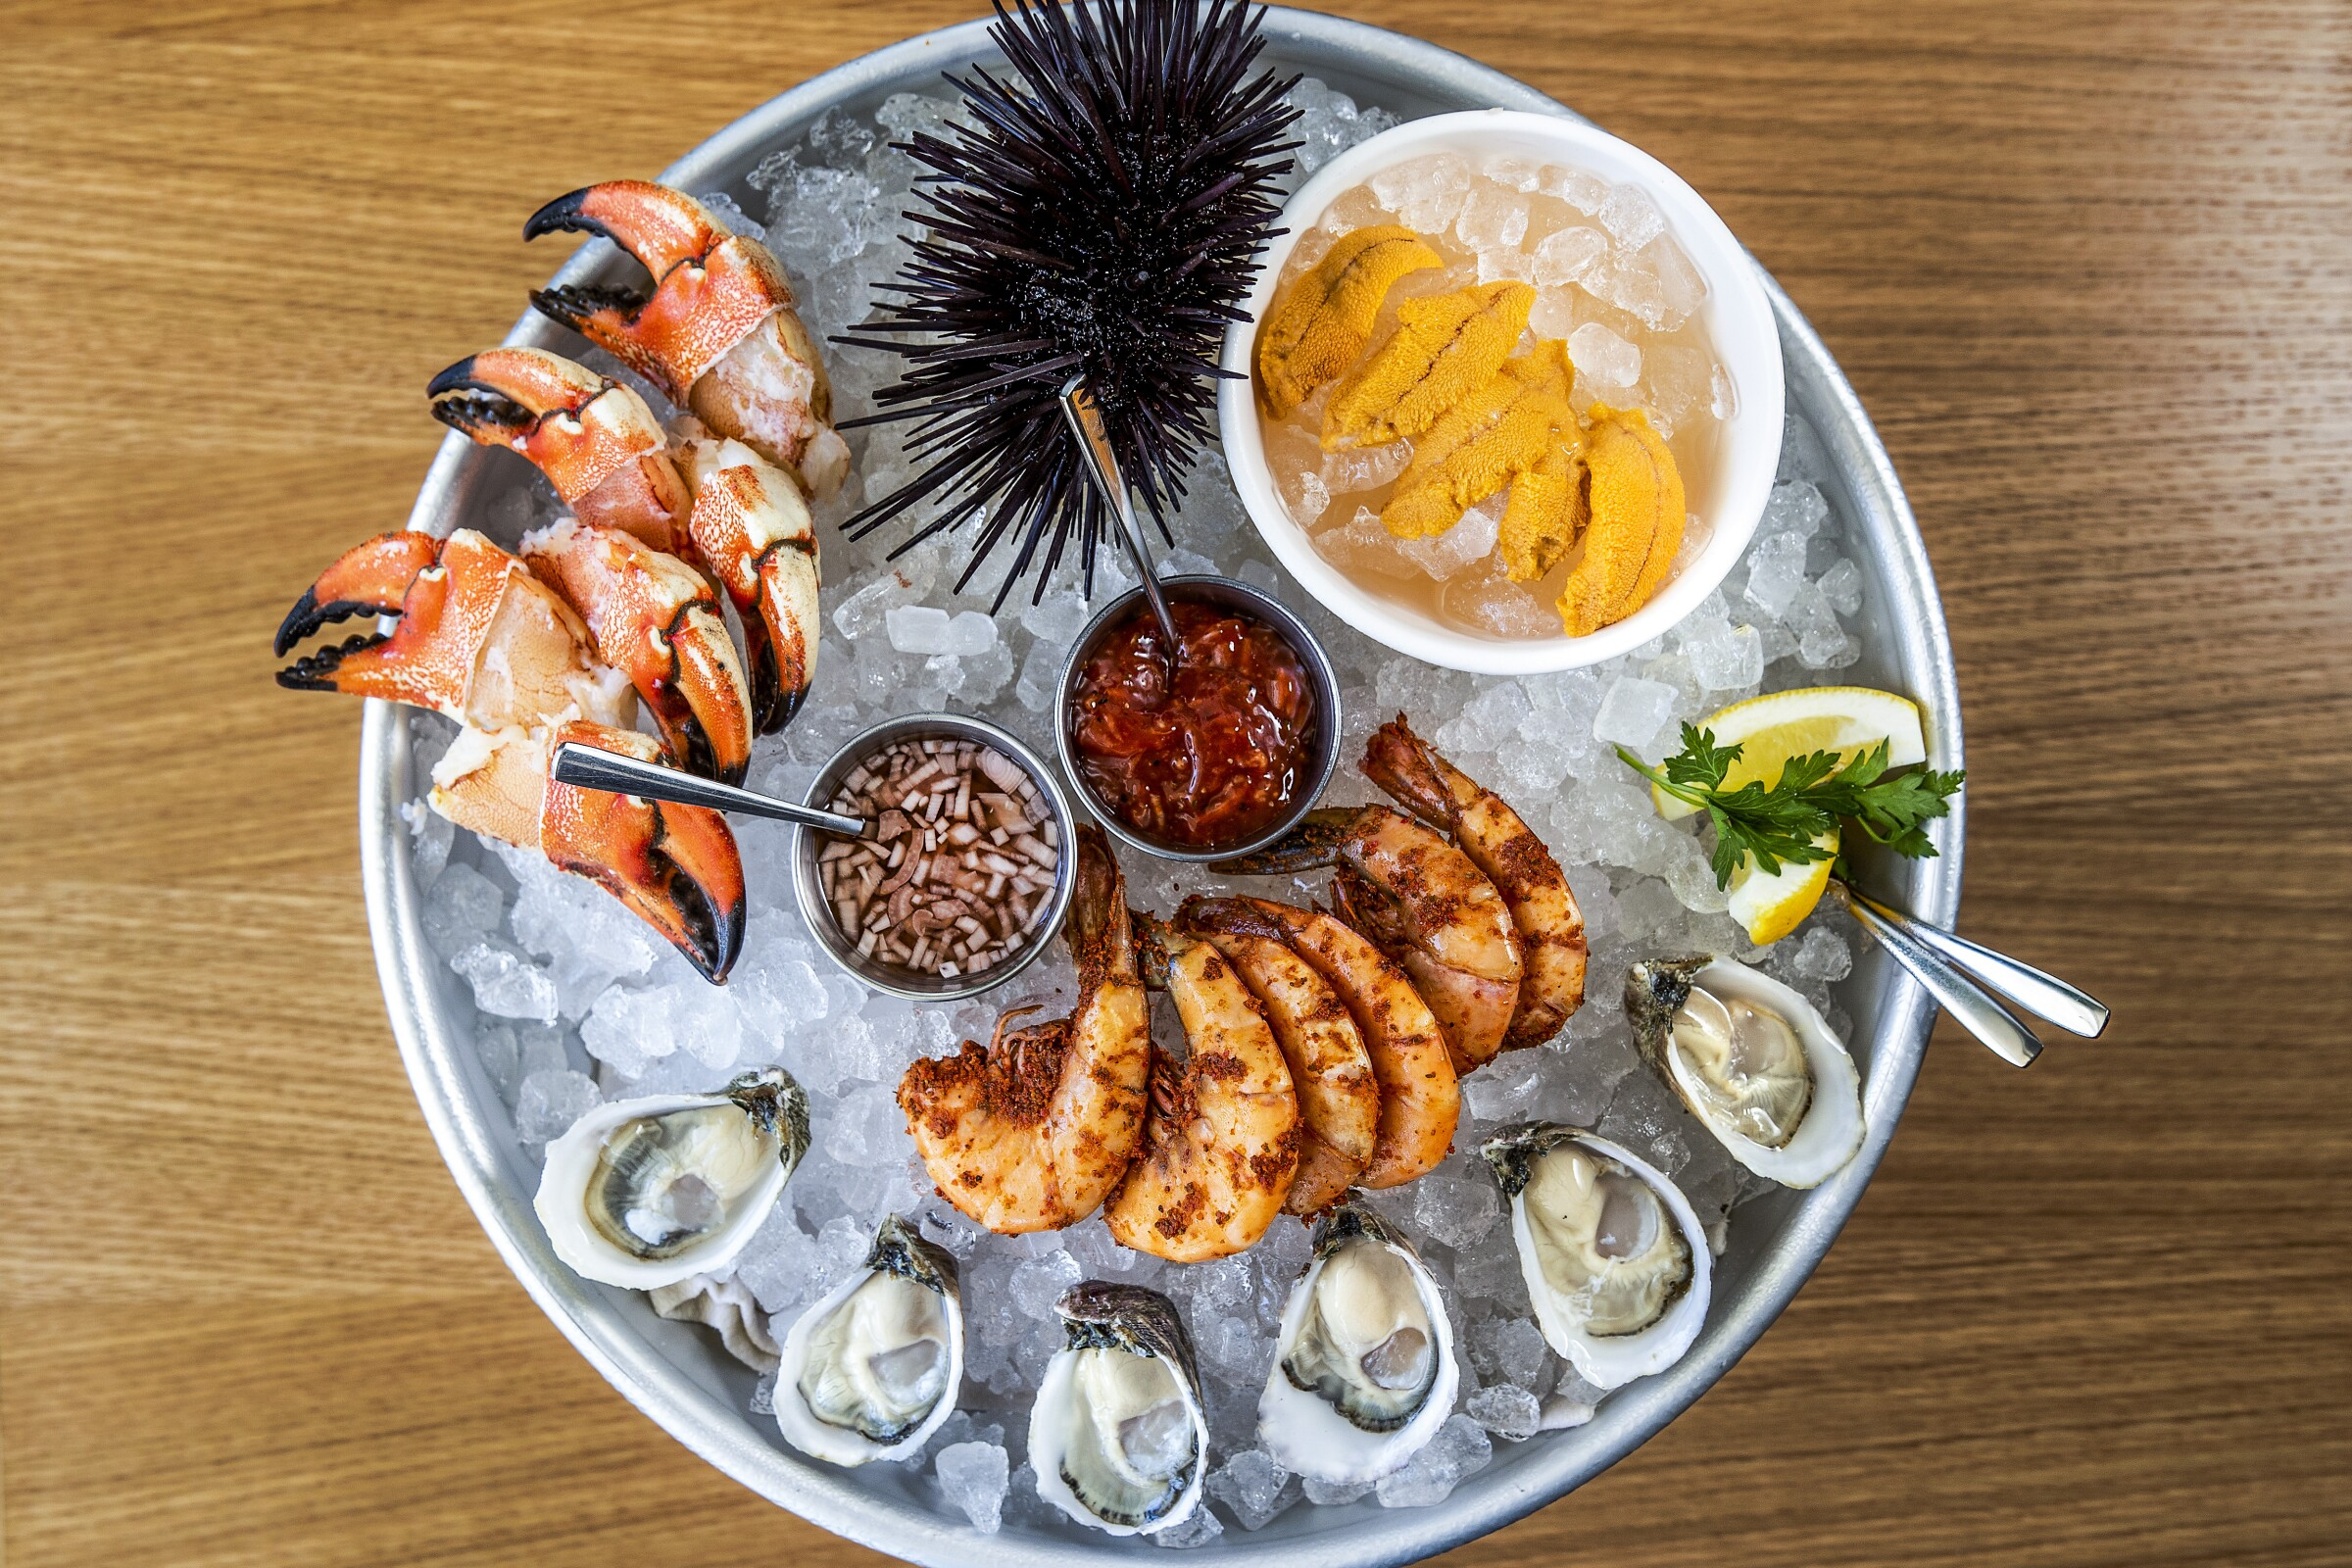 Jonah crab claws, Santa Barbara sea urchin, peel-and-eat shrimp and Pacific Gold Reserves oysters on ice.